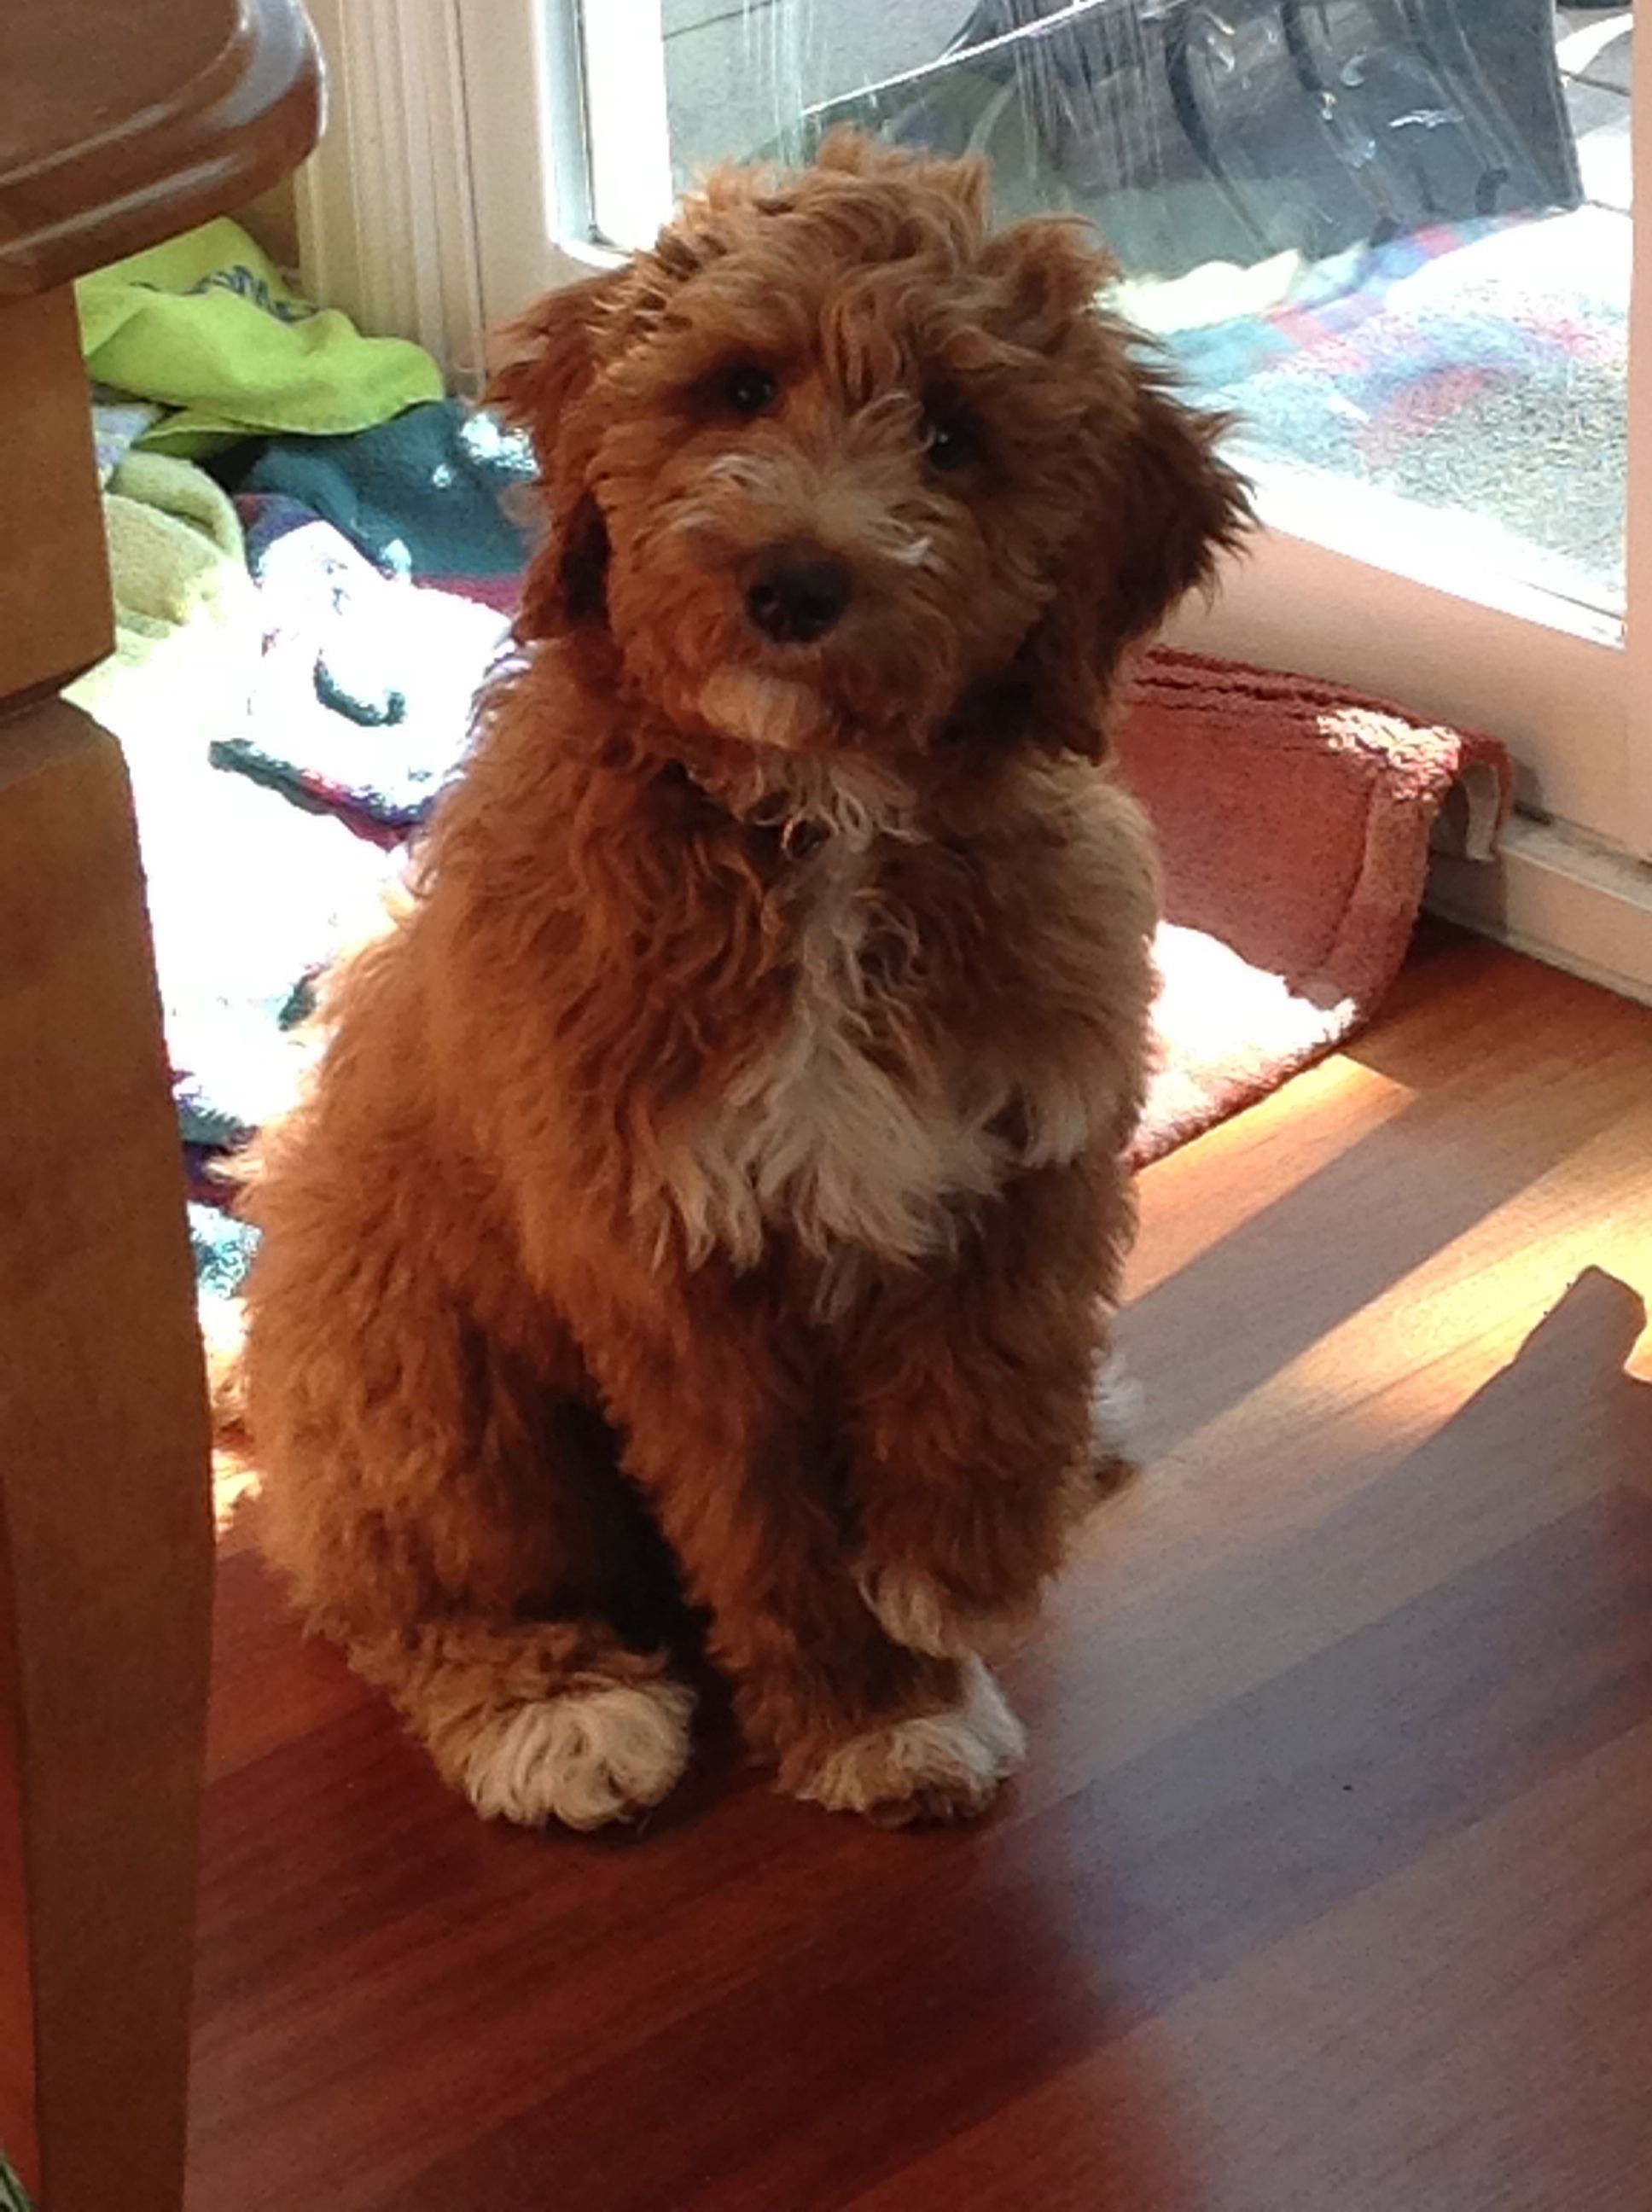 This is my puppy griswald he is a ttoodle a Tibetan terier